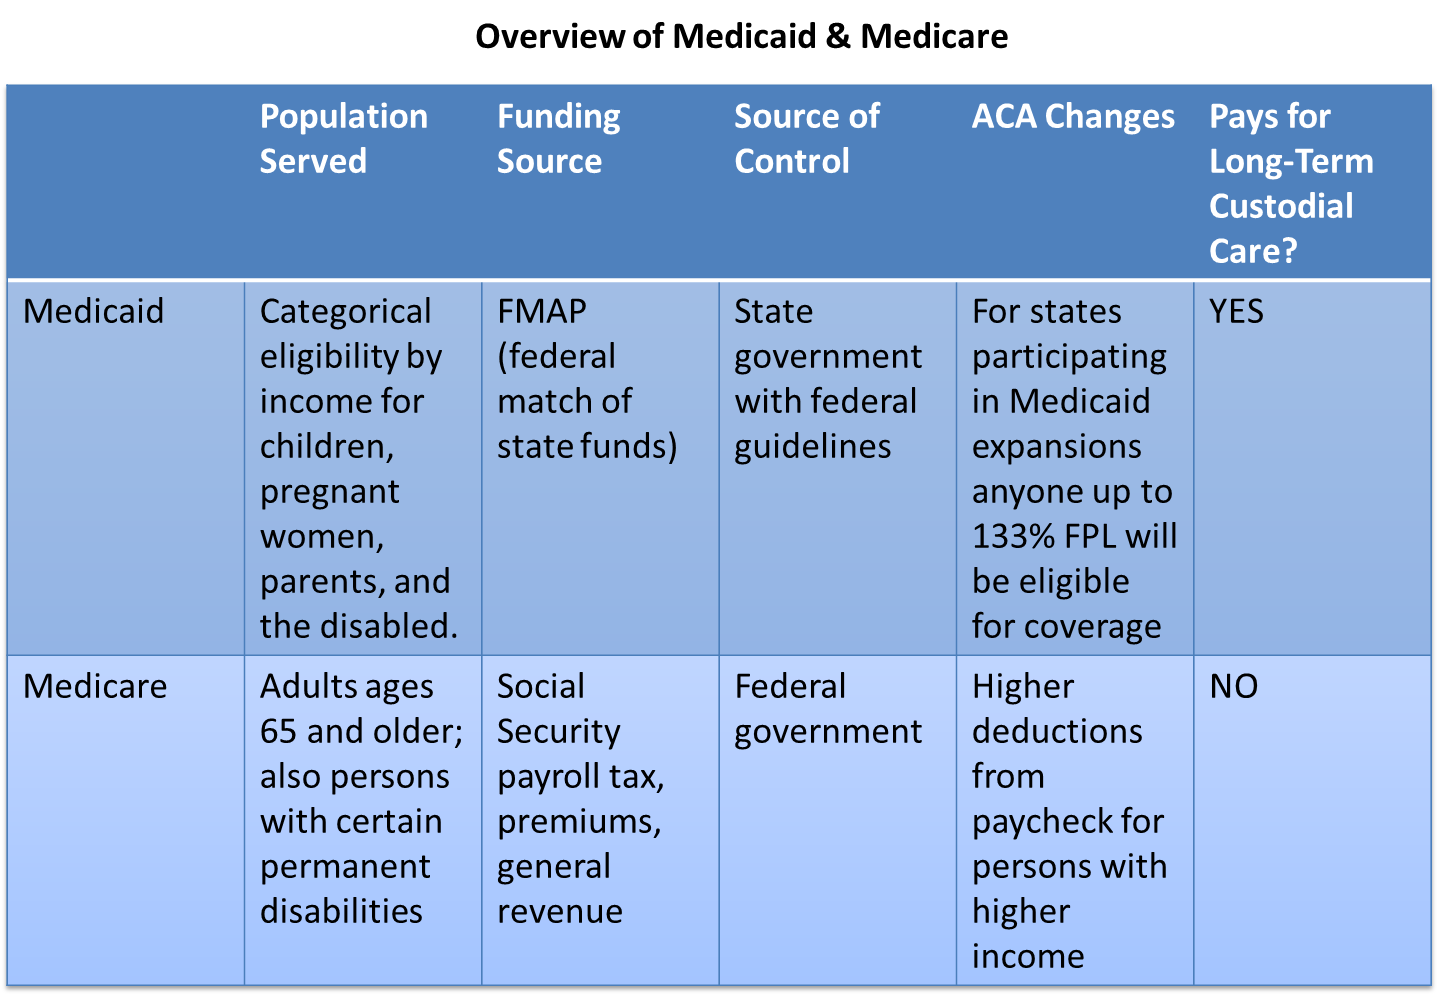 Medicare and Medicaid.